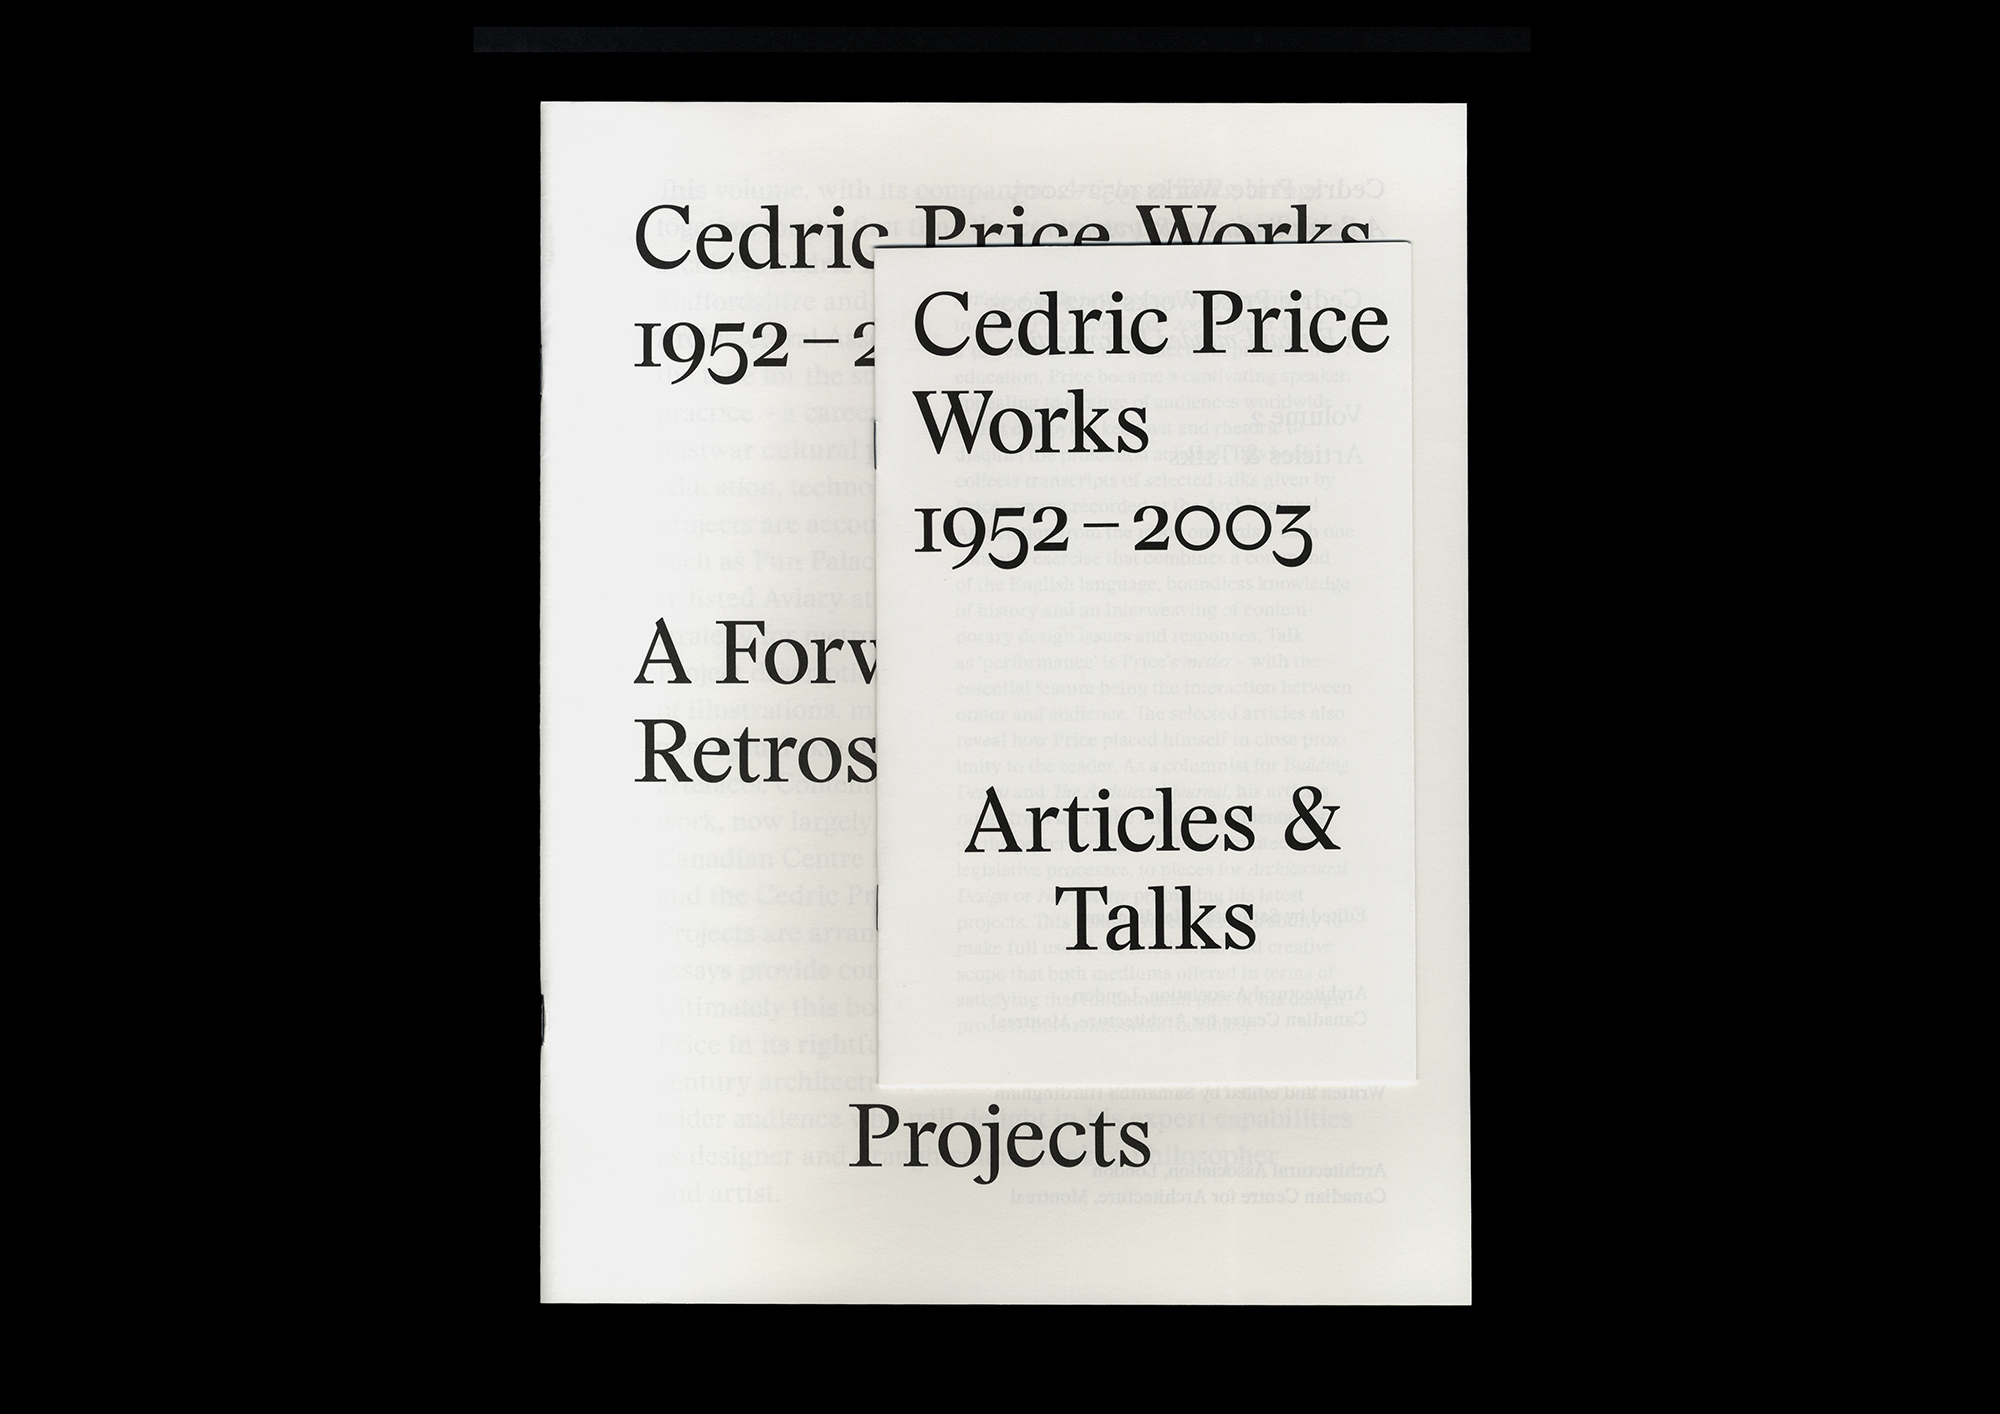 Cover image: Cedric Price Works preview catalogue (2014)